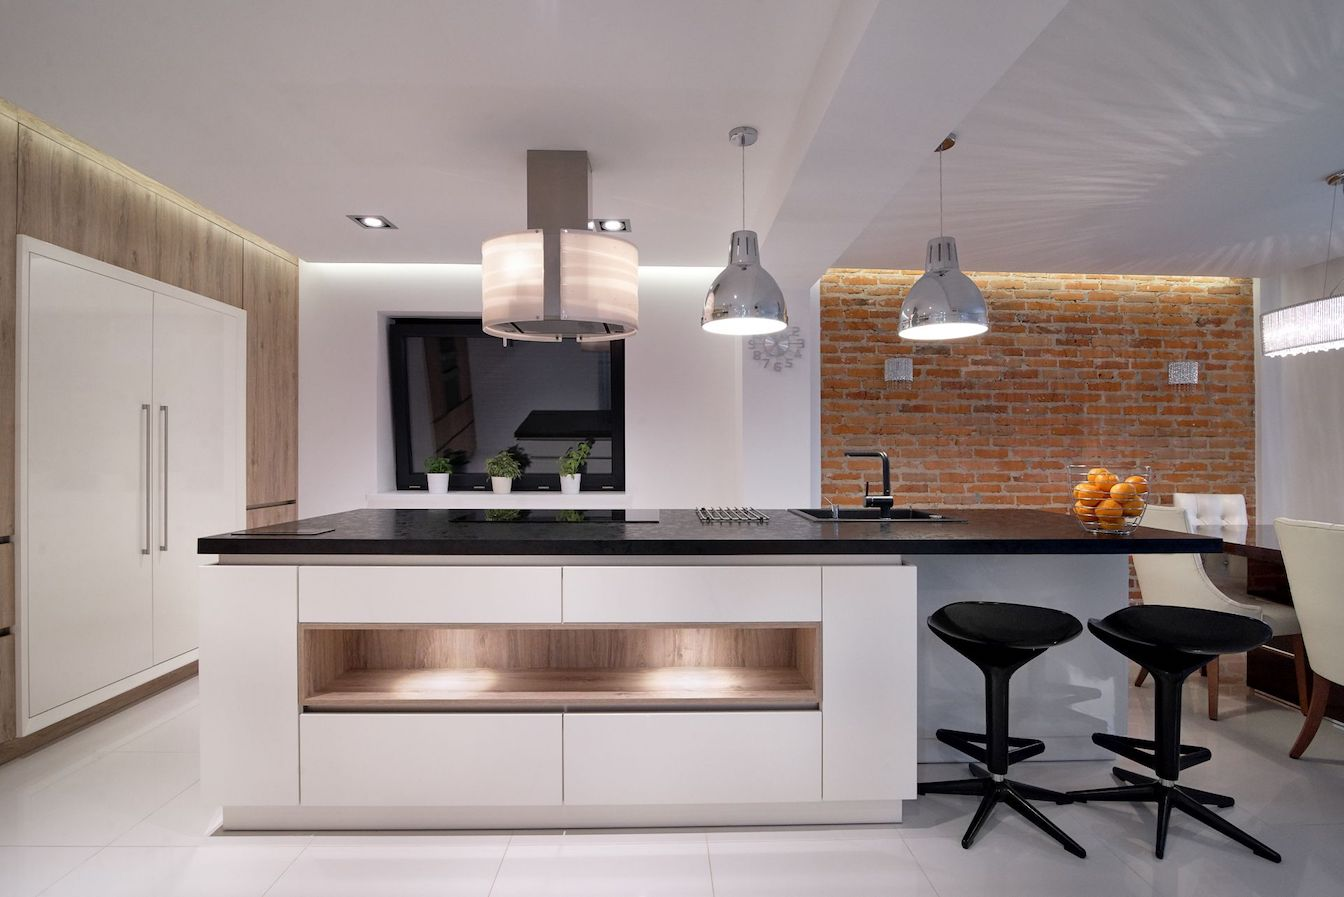 kitchen lighting tips. Kitchen Lighting Tips